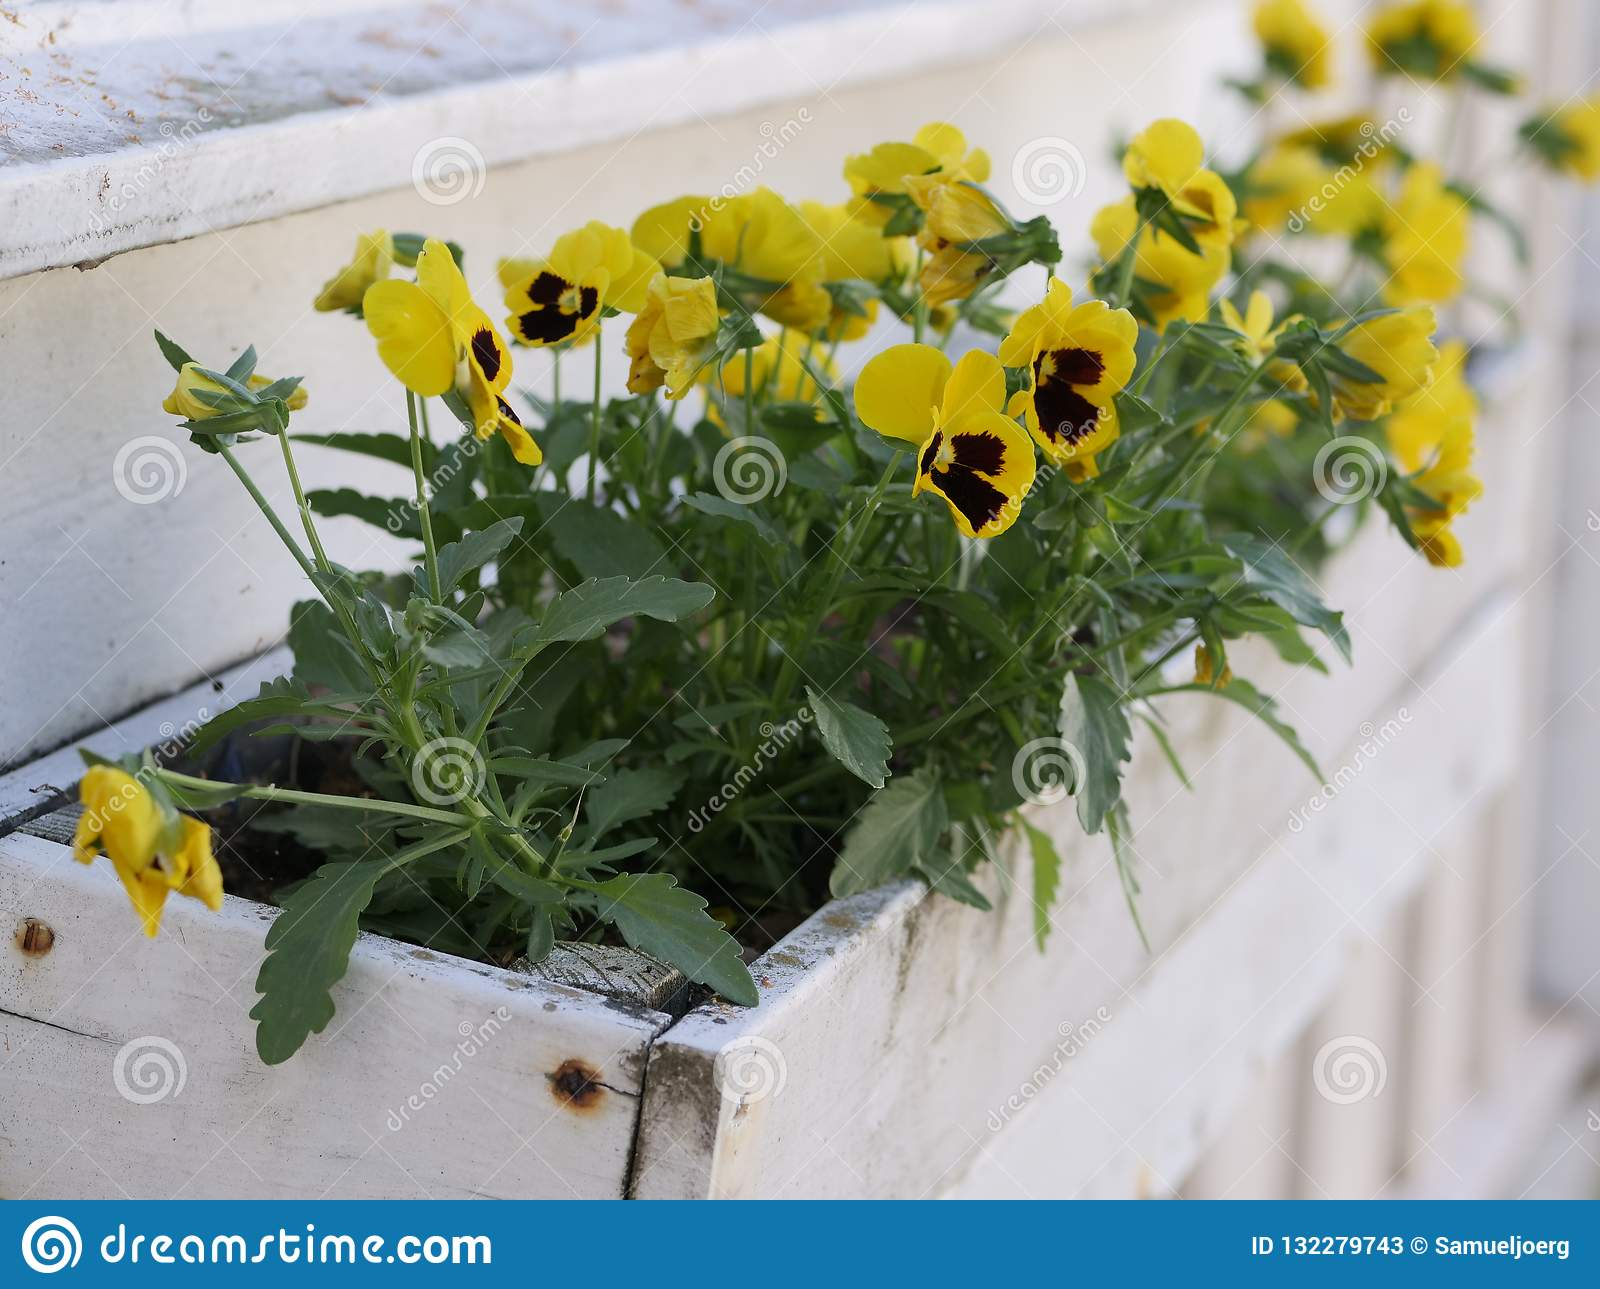 Yellow violas in a white flowerpot